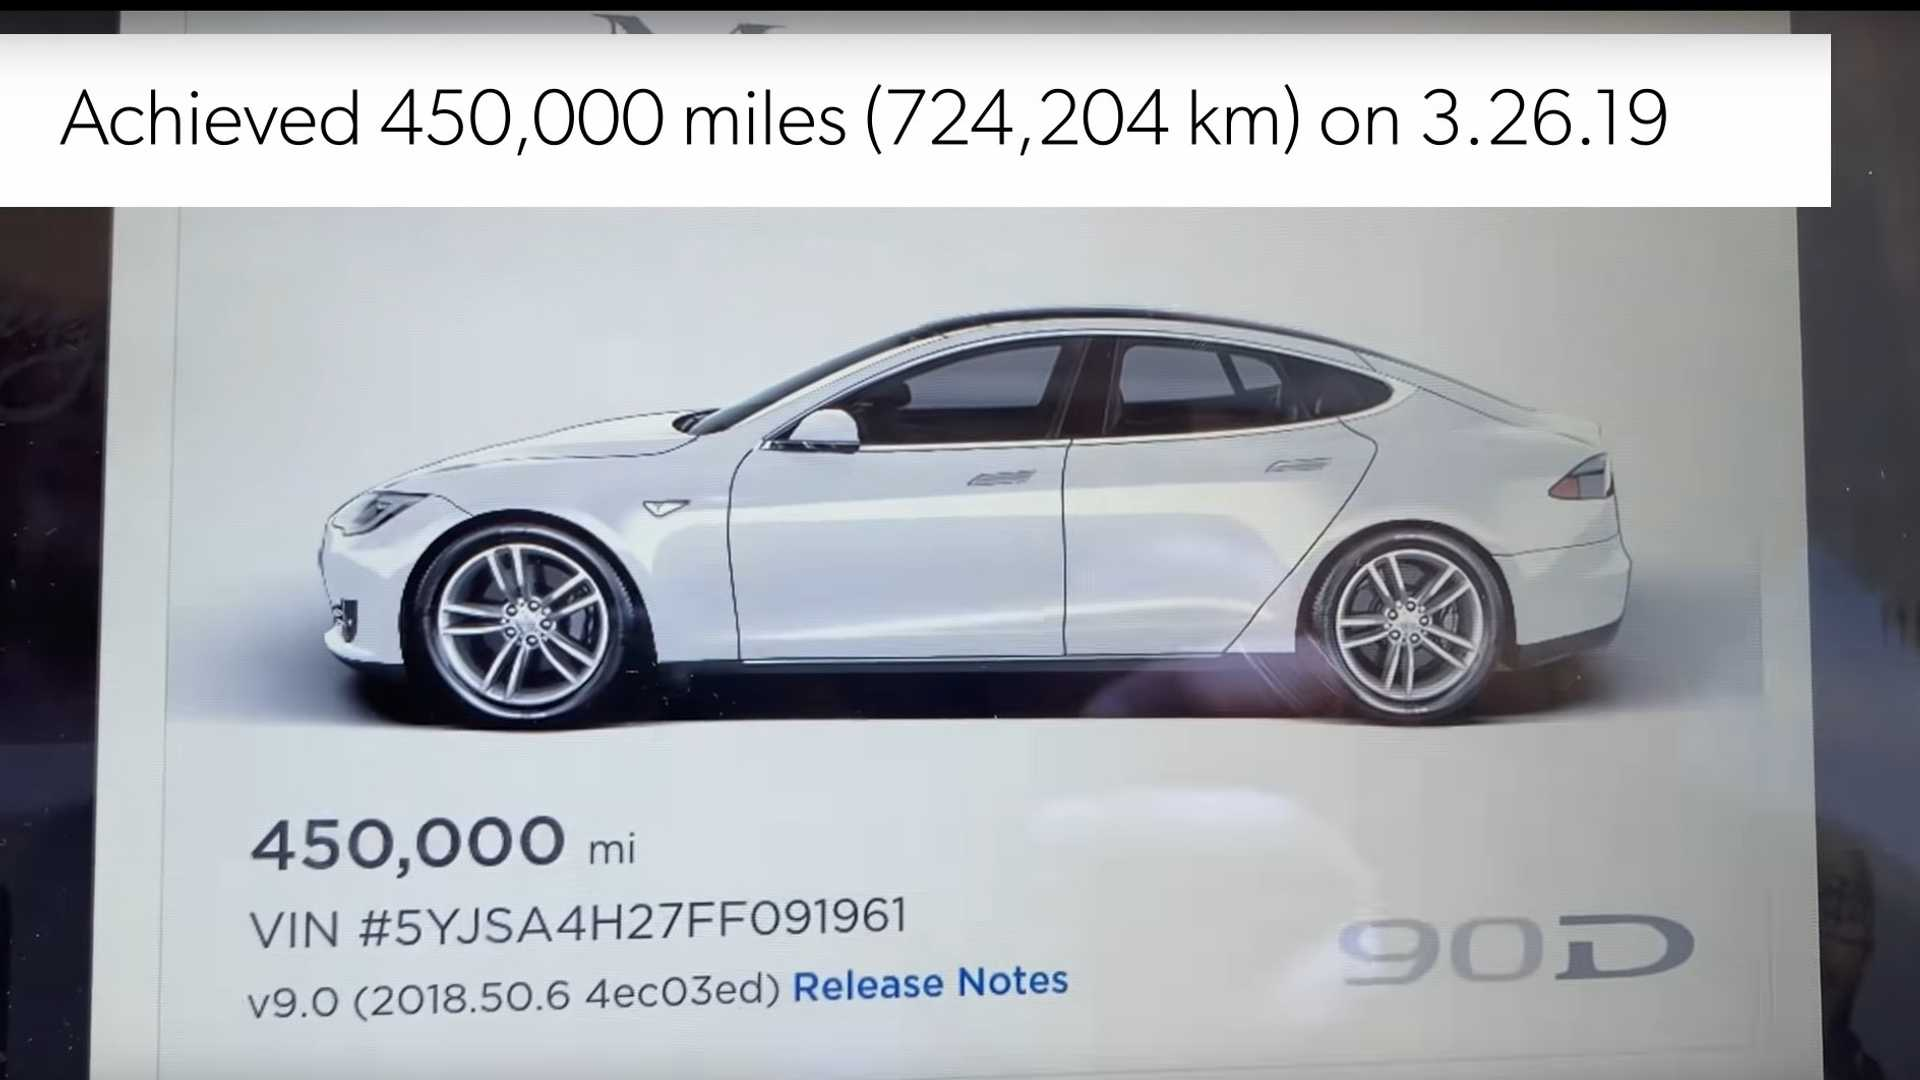 Tesla Model S Review And Cost Analysis After 450,000 Miles